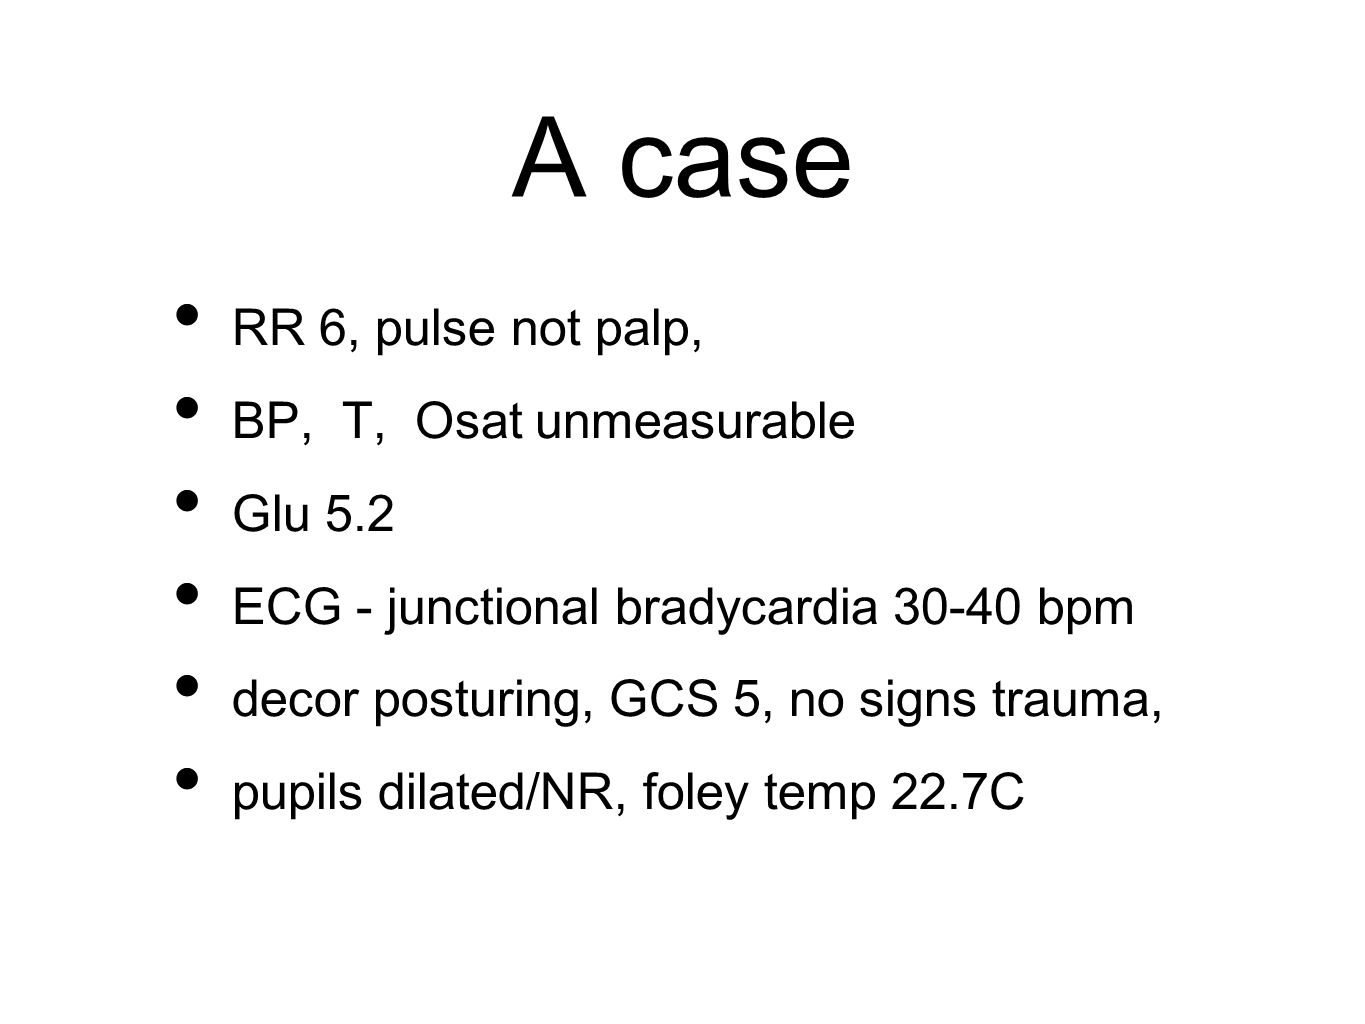 CBC underestimates blood loss because of normal hematocrit normal WBC count does not rule out infection normal platelet count does not infer they are functional Danzl DF.